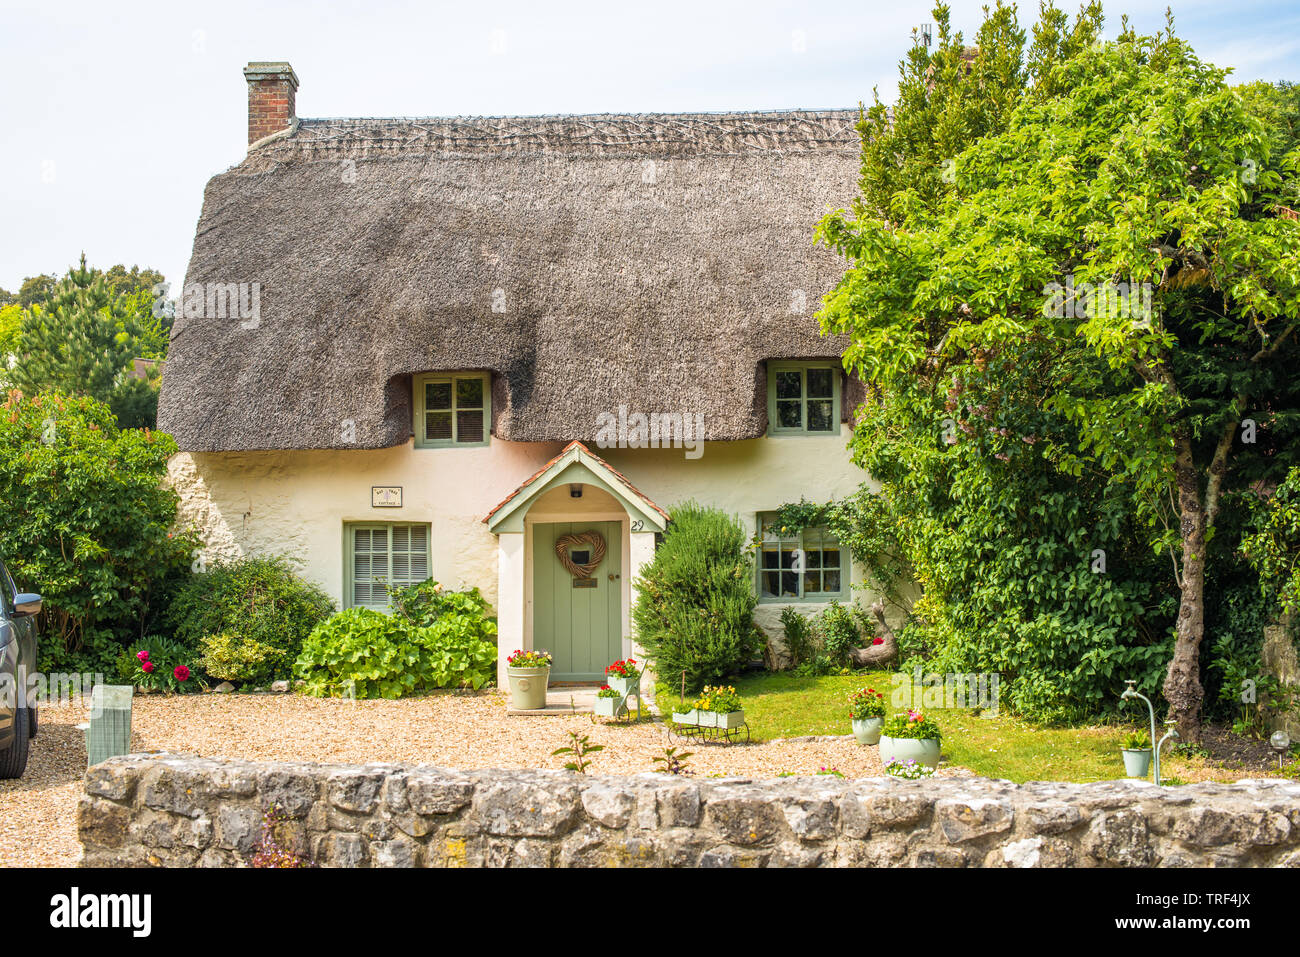 Characterful thatched cottages in the village of West Lulworth, Dorset, England. UK. - Stock Image